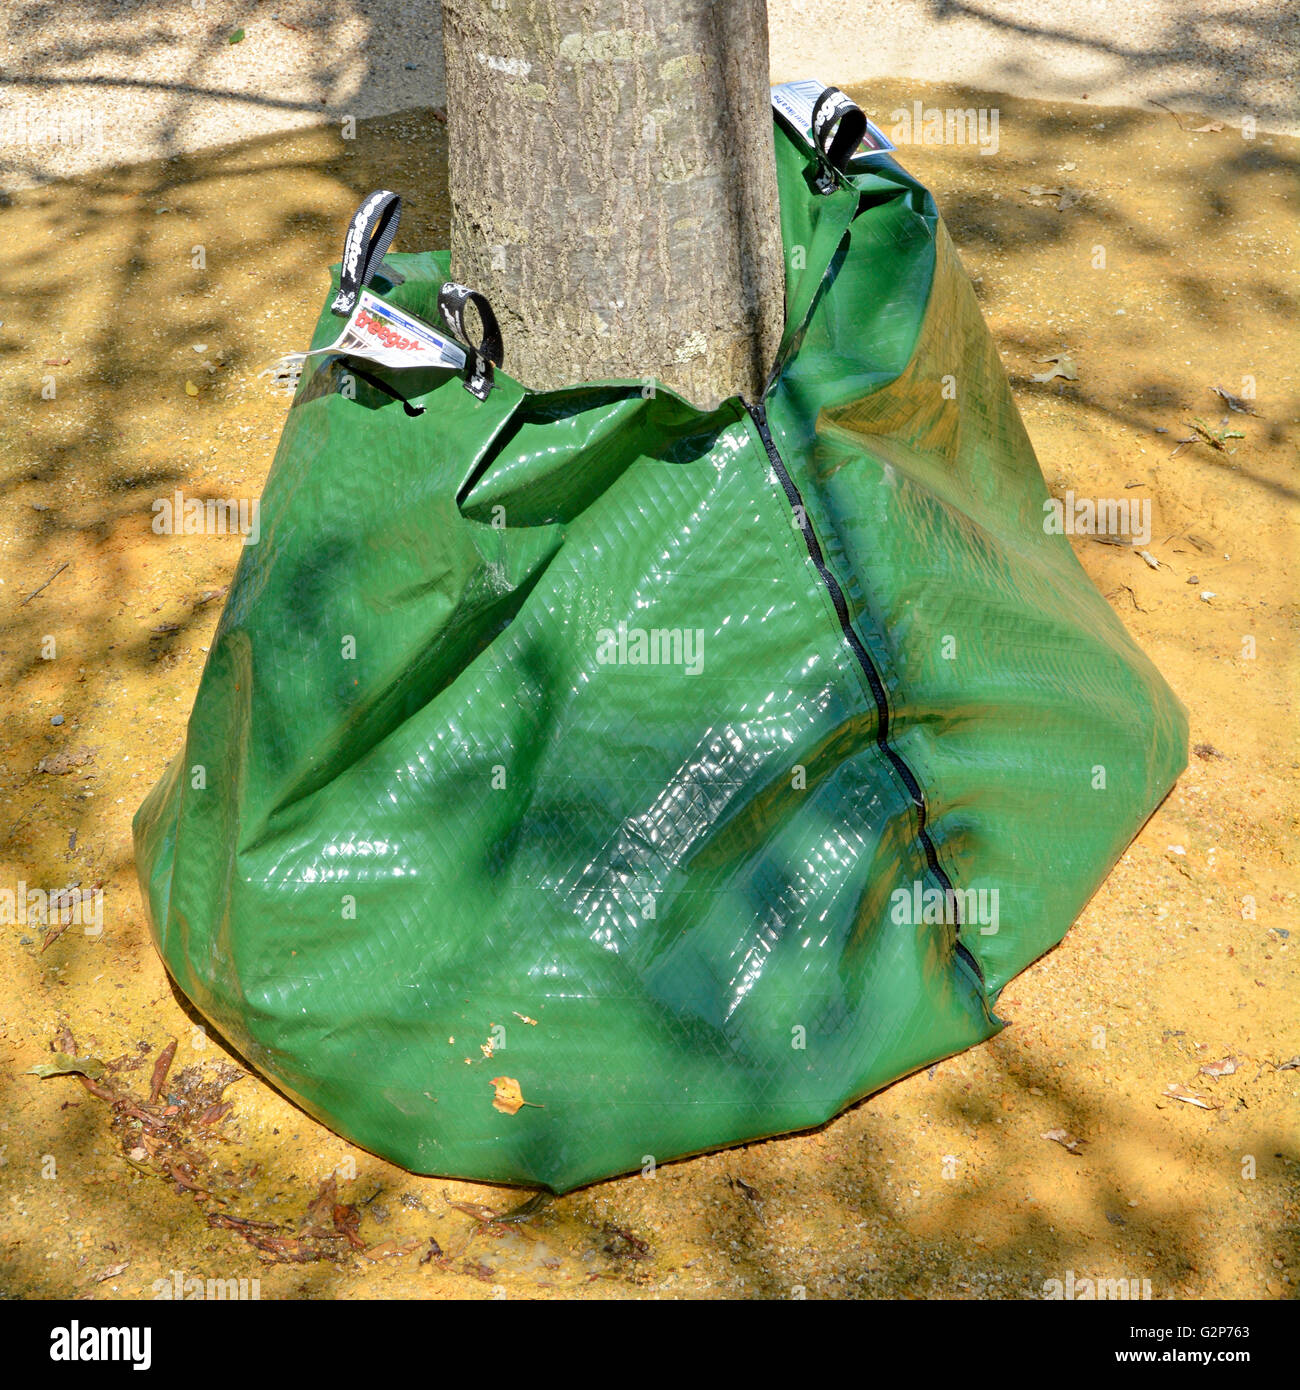 Treegator slow release plastic water bag at the bottom of new planting of trees in Queen Elizabeth Olympic Park - Stock Image